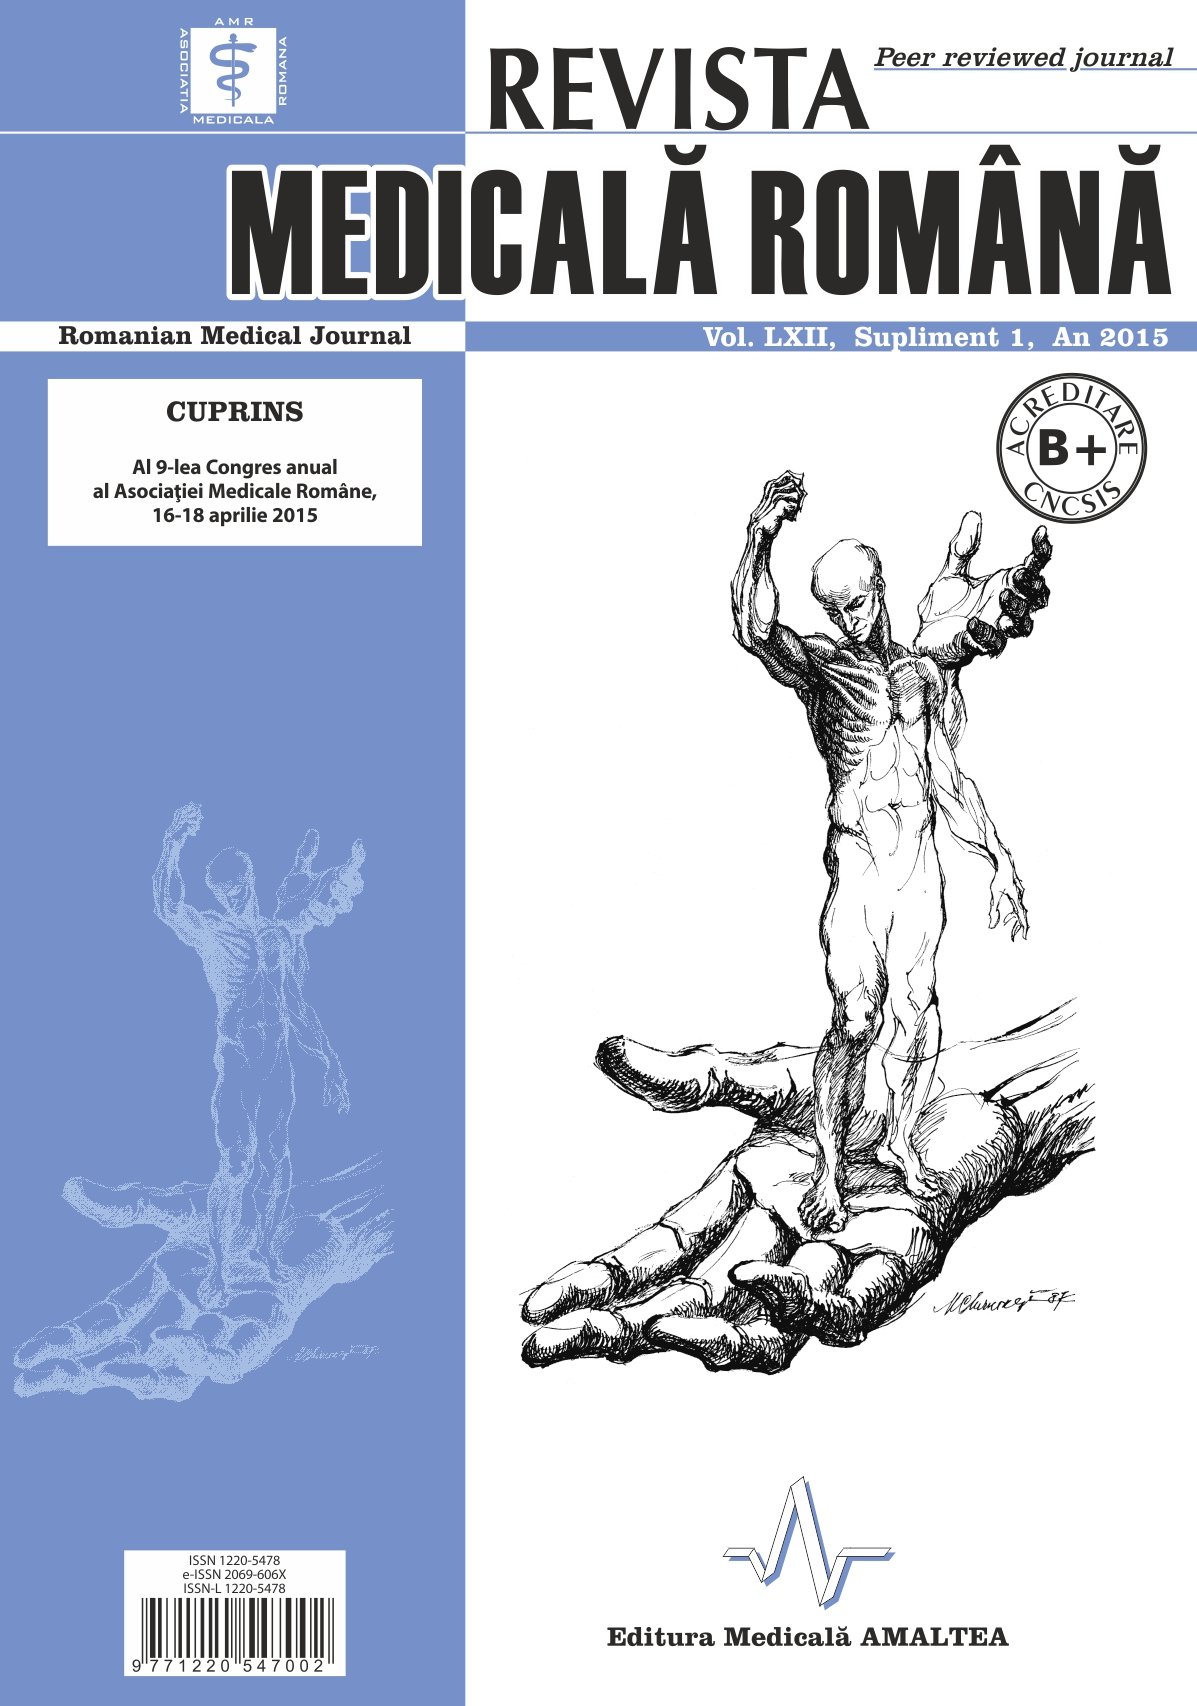 REVISTA MEDICALA ROMANA - Romanian Medical Journal, Vol. LXII, Supliment, Year 2015